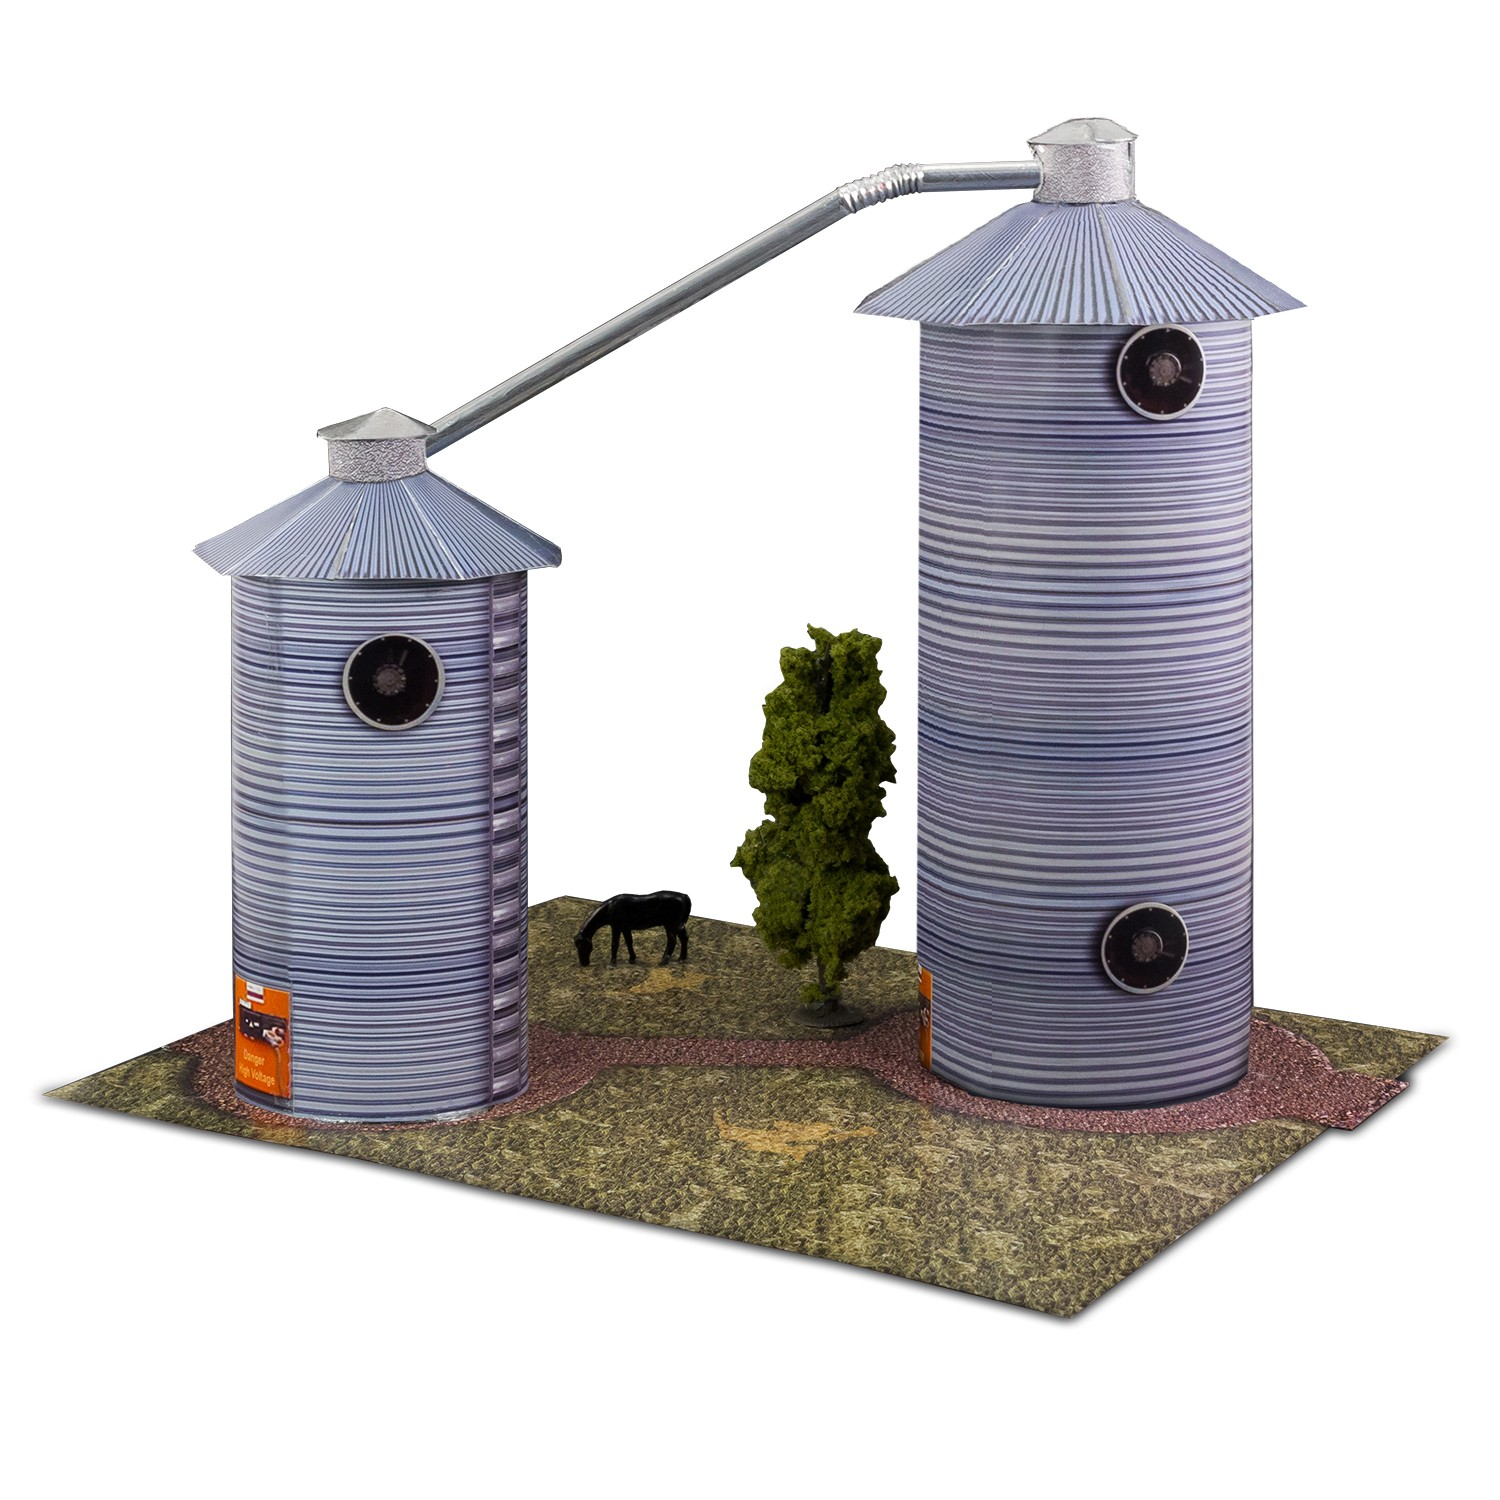 """BK 4804 1:48 Scale """"Grain Dryers"""" Photo Real Scale Building Kit"""